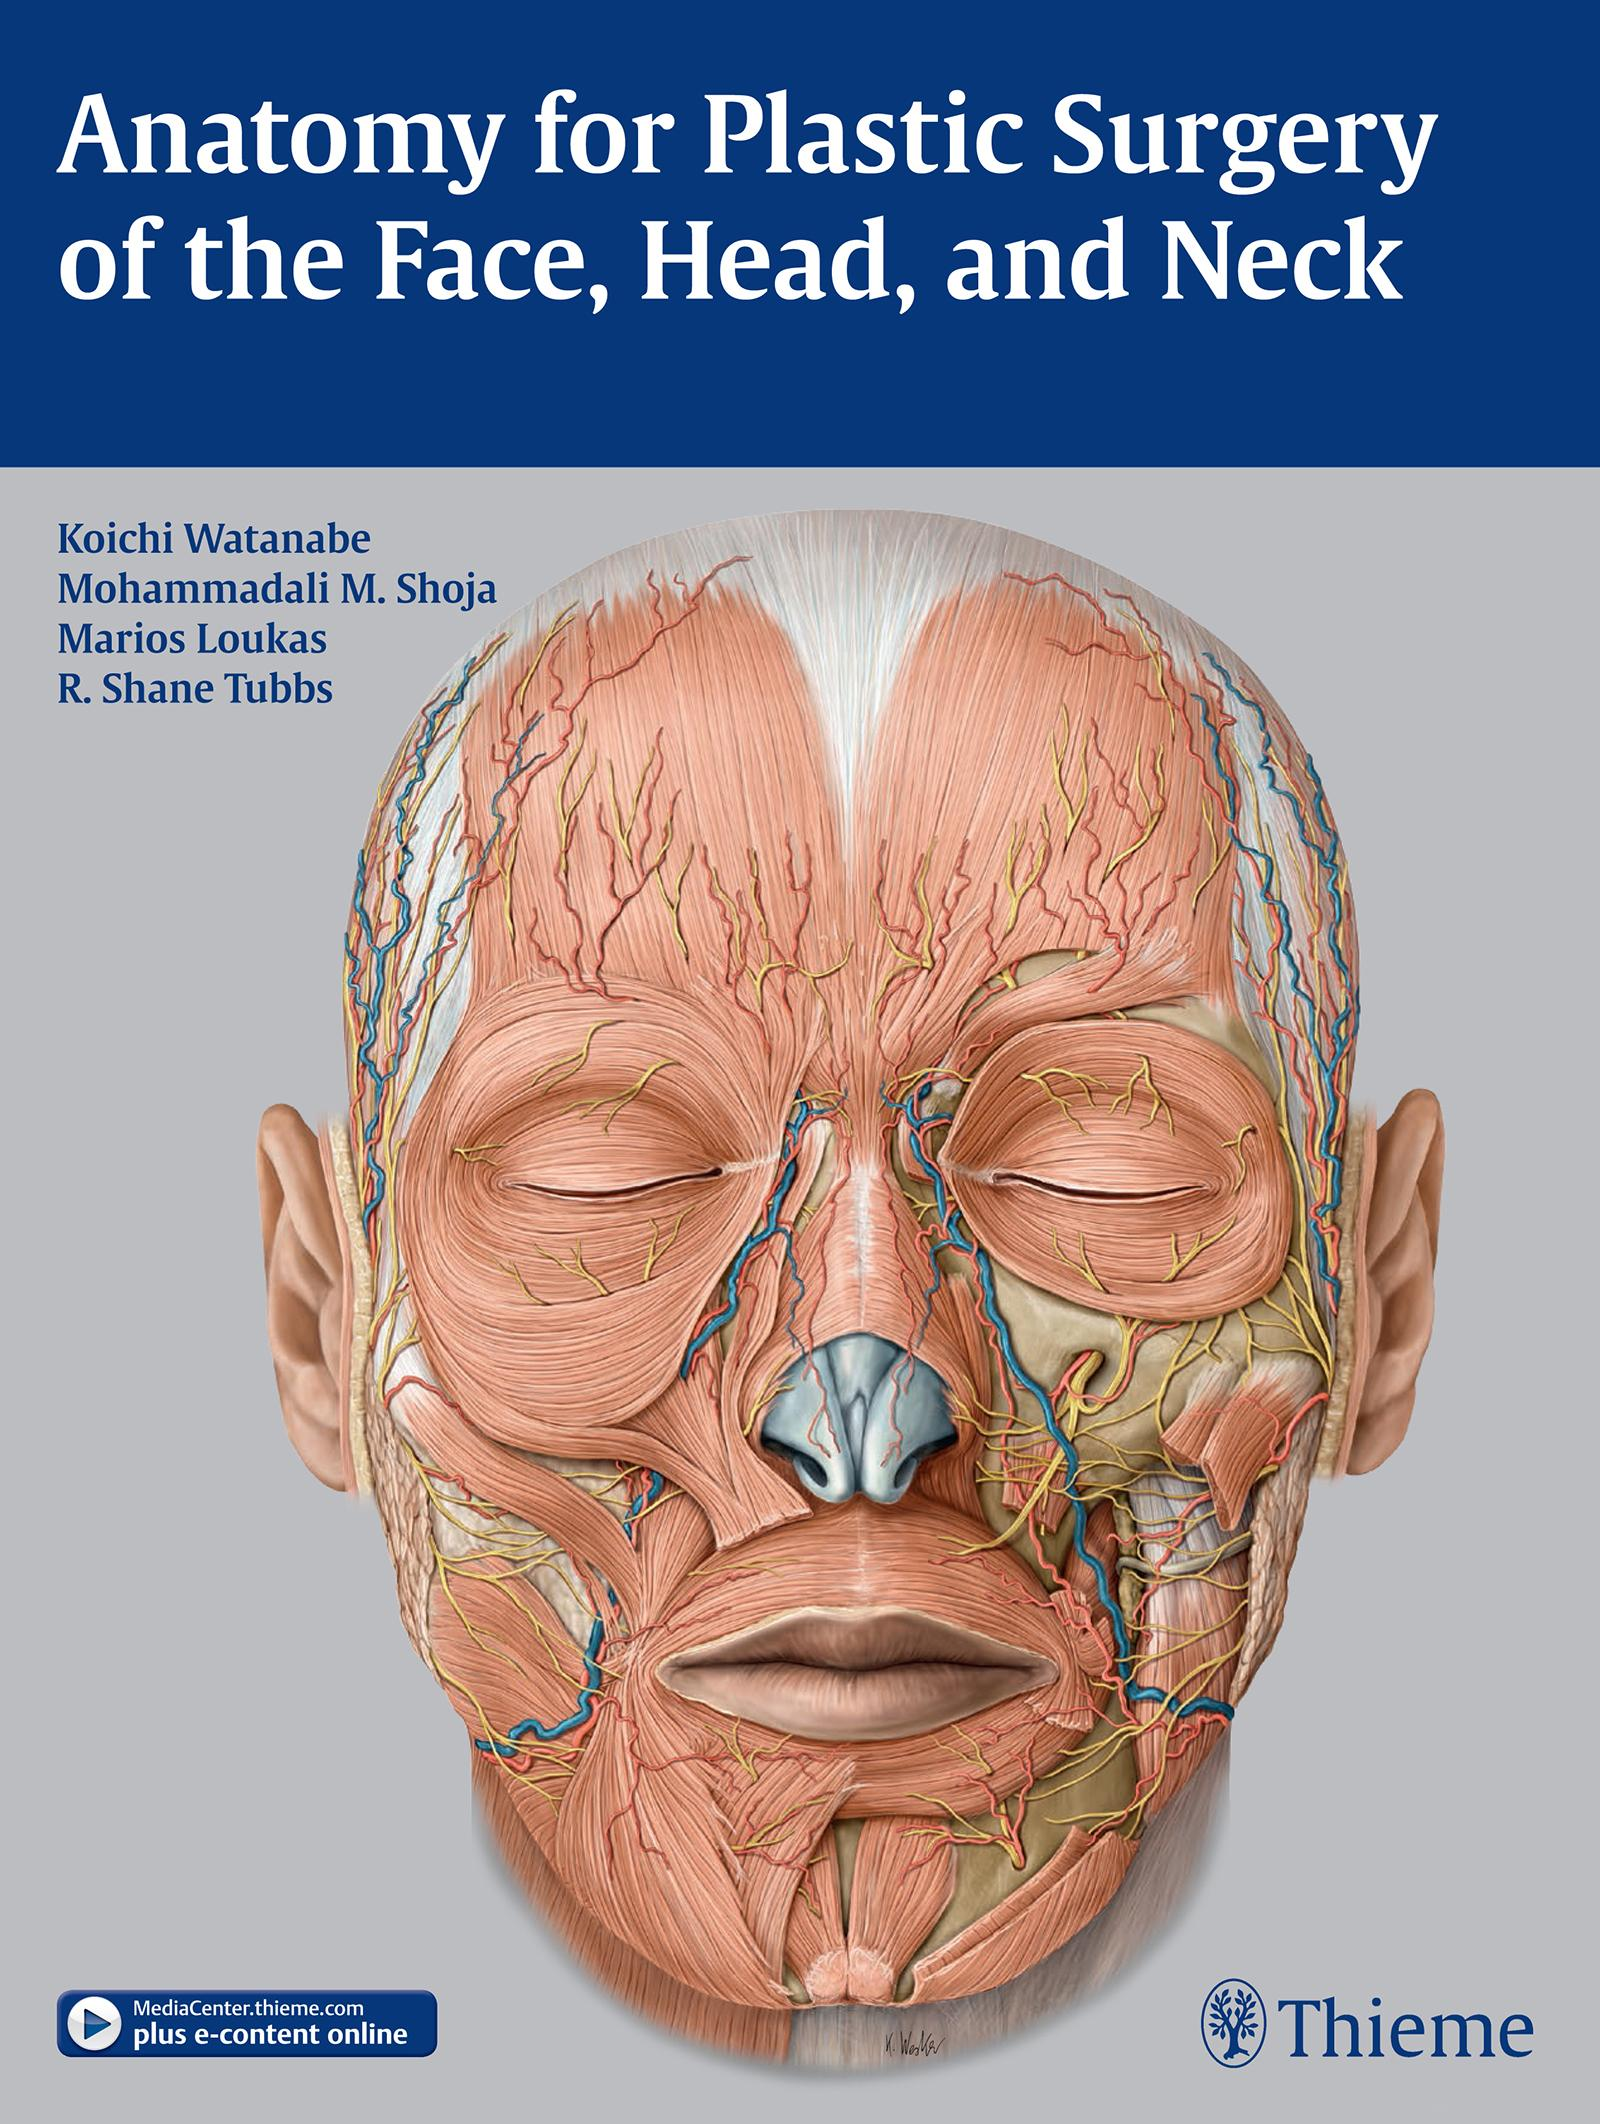 Anatomy for Plastic Surgery of the Face, Head, and Neck - Walmart.com